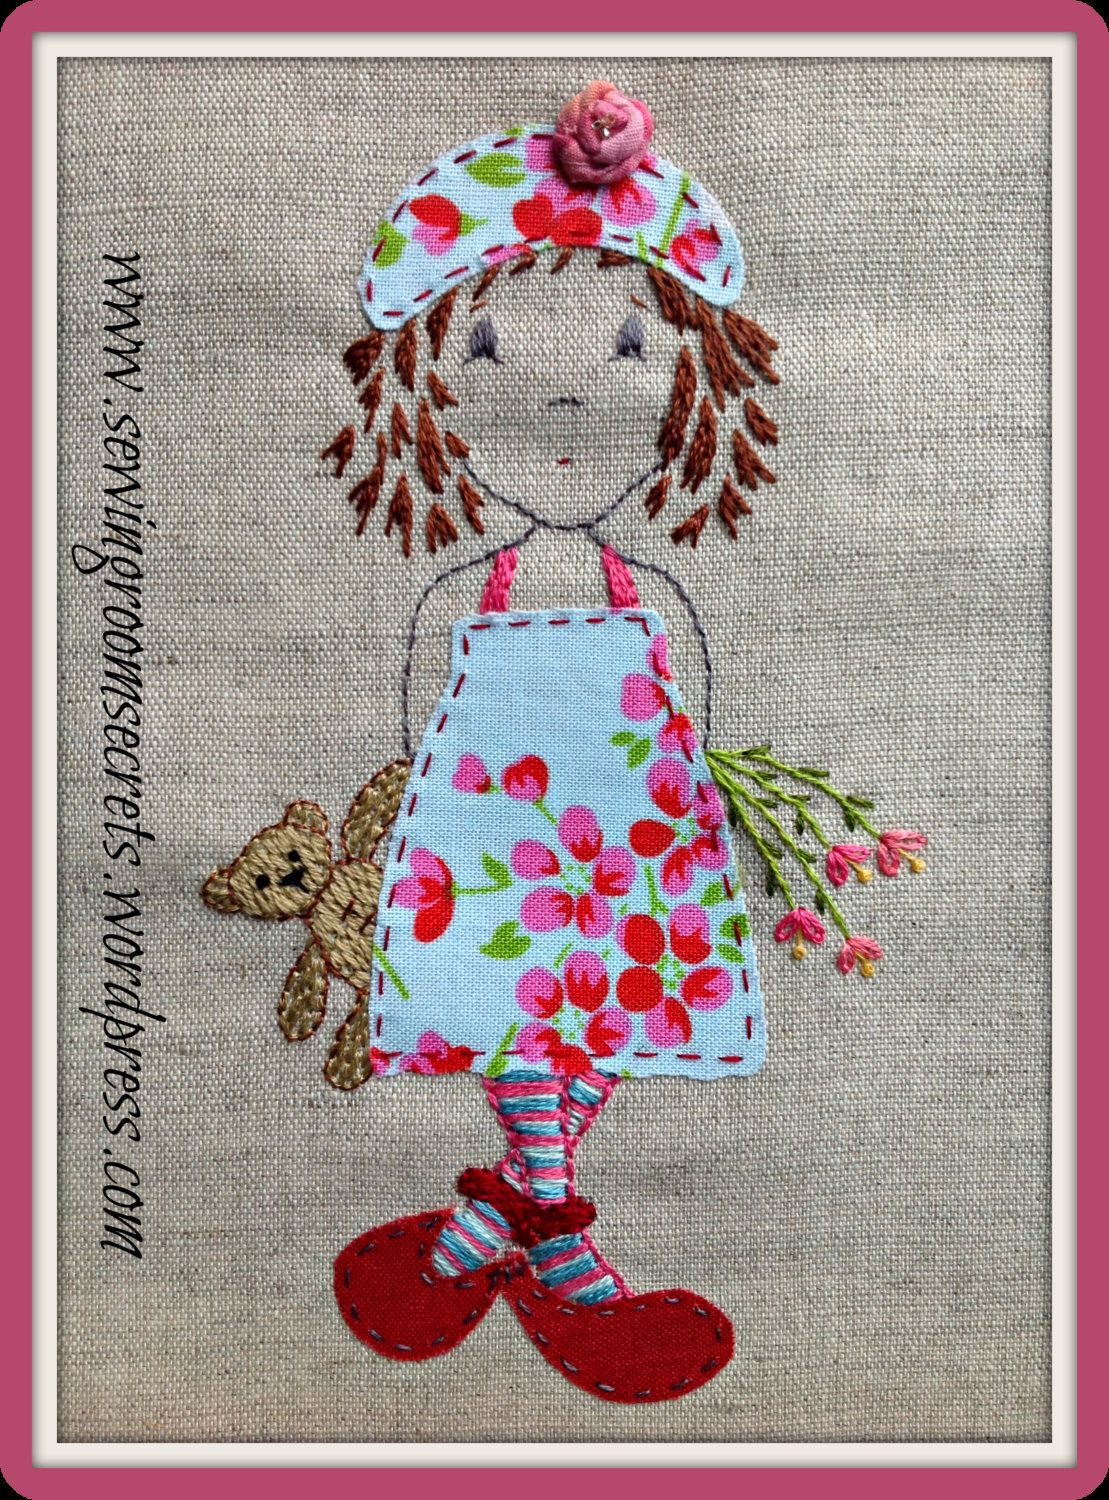 Hand embroidery pattern 'A Pocketful of by SewingRoomSecrets #dolistsorbooks